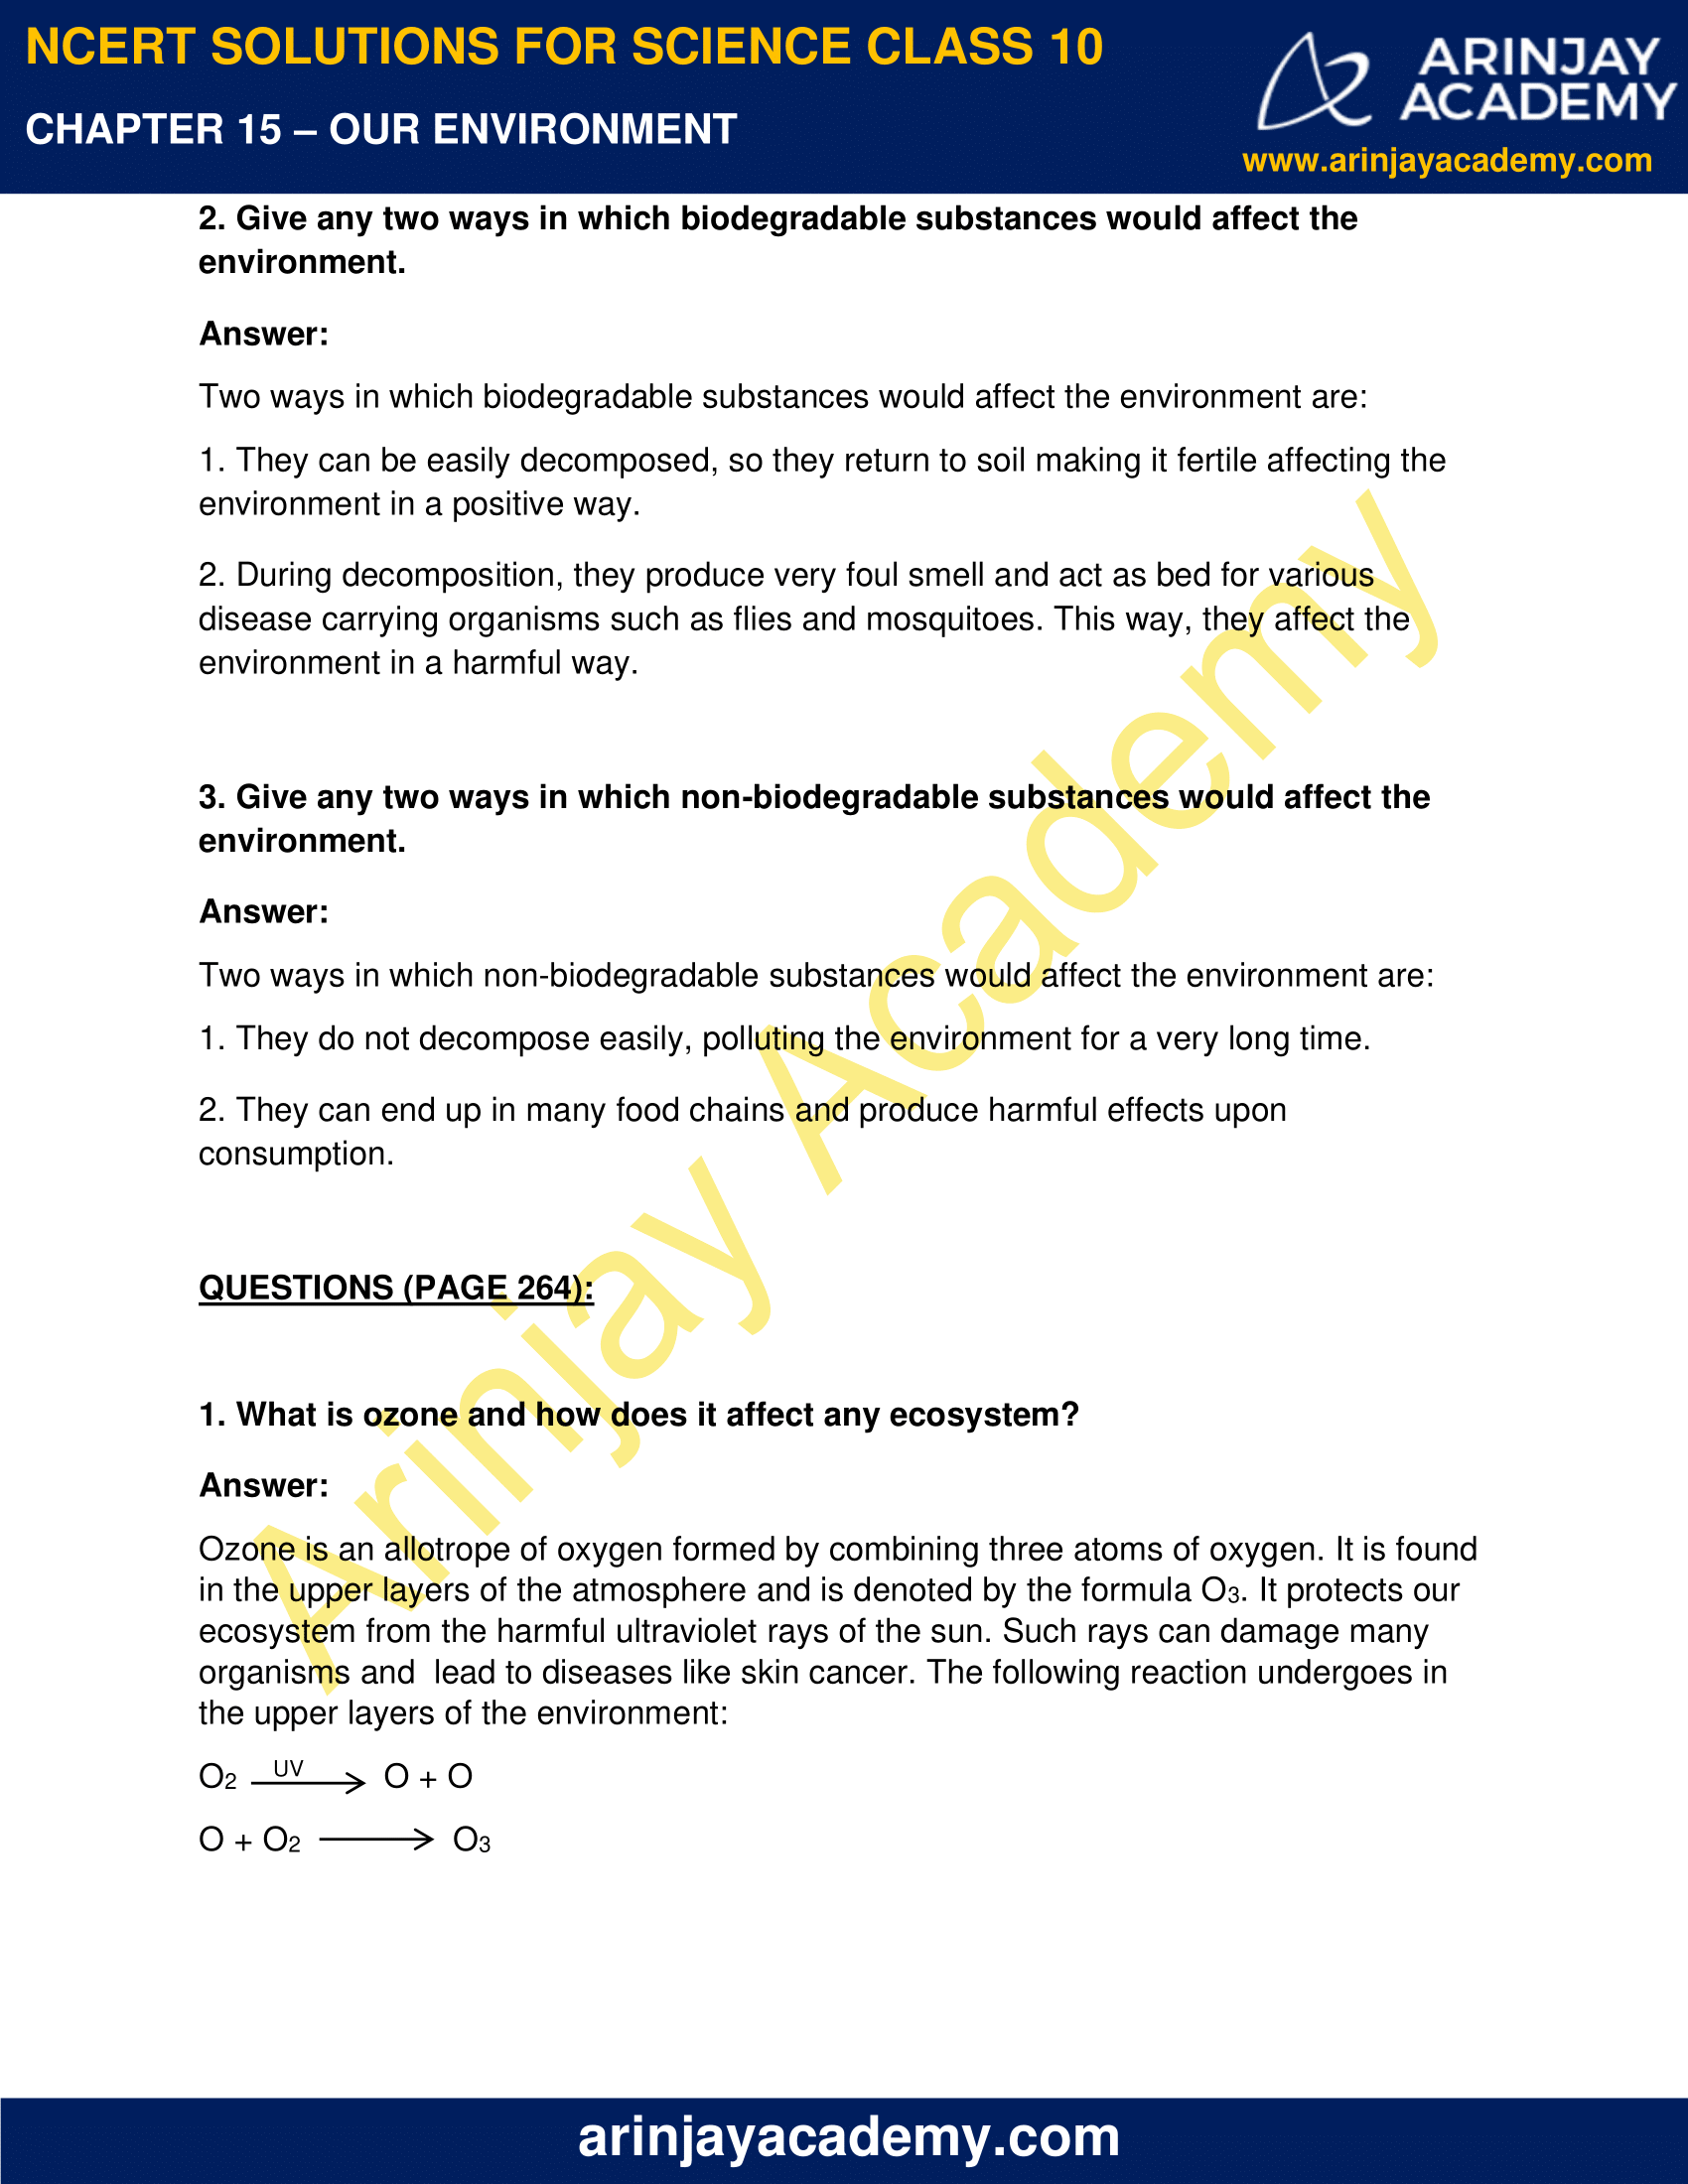 NCERT Solutions for Class 10 Science Chapter 15 image 2